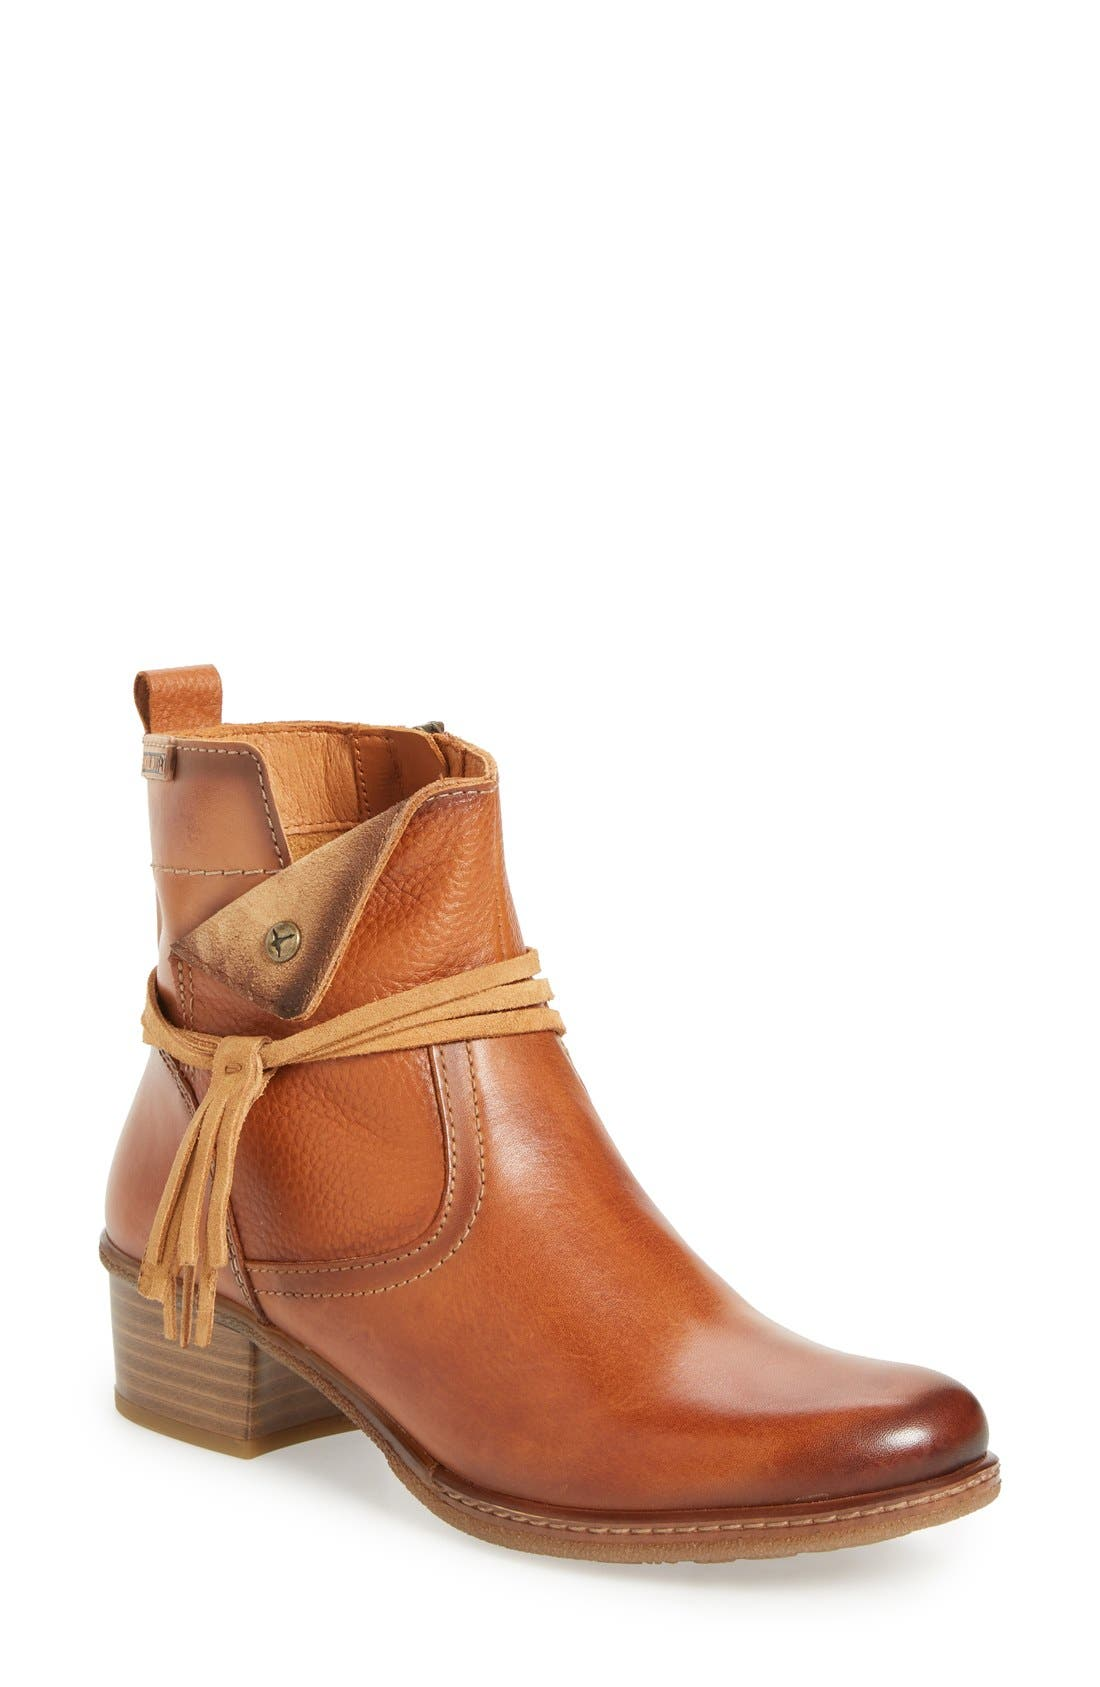 'Zaragoza' Bootie,                         Main,                         color, Brandy Leather